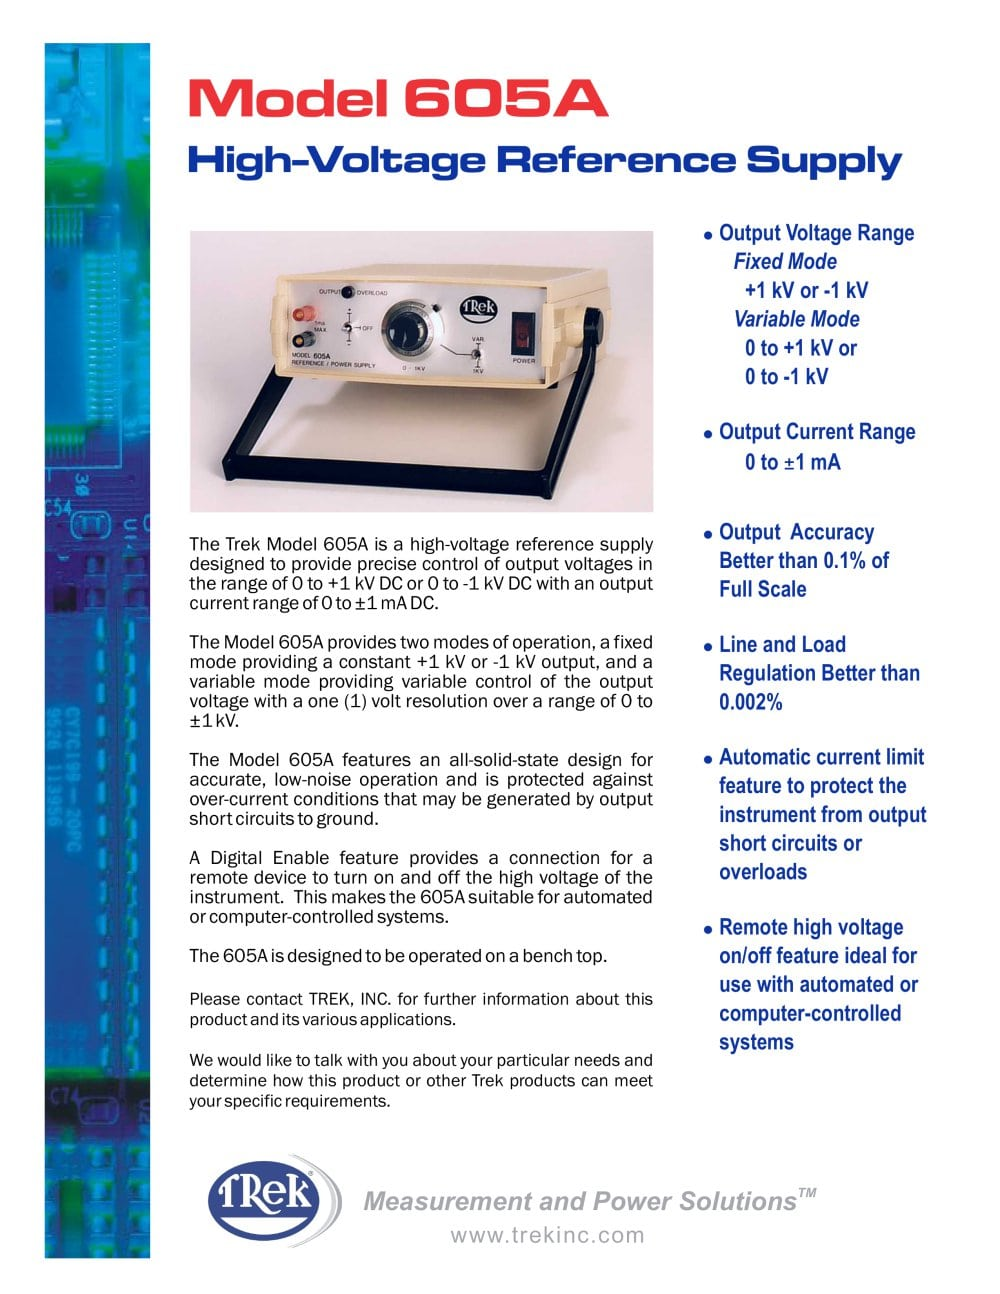 605a High Voltage Reference Supply Trek Inc Pdf Catalogue Of Automatic Control And Regulation Its Input 1 2 Pages